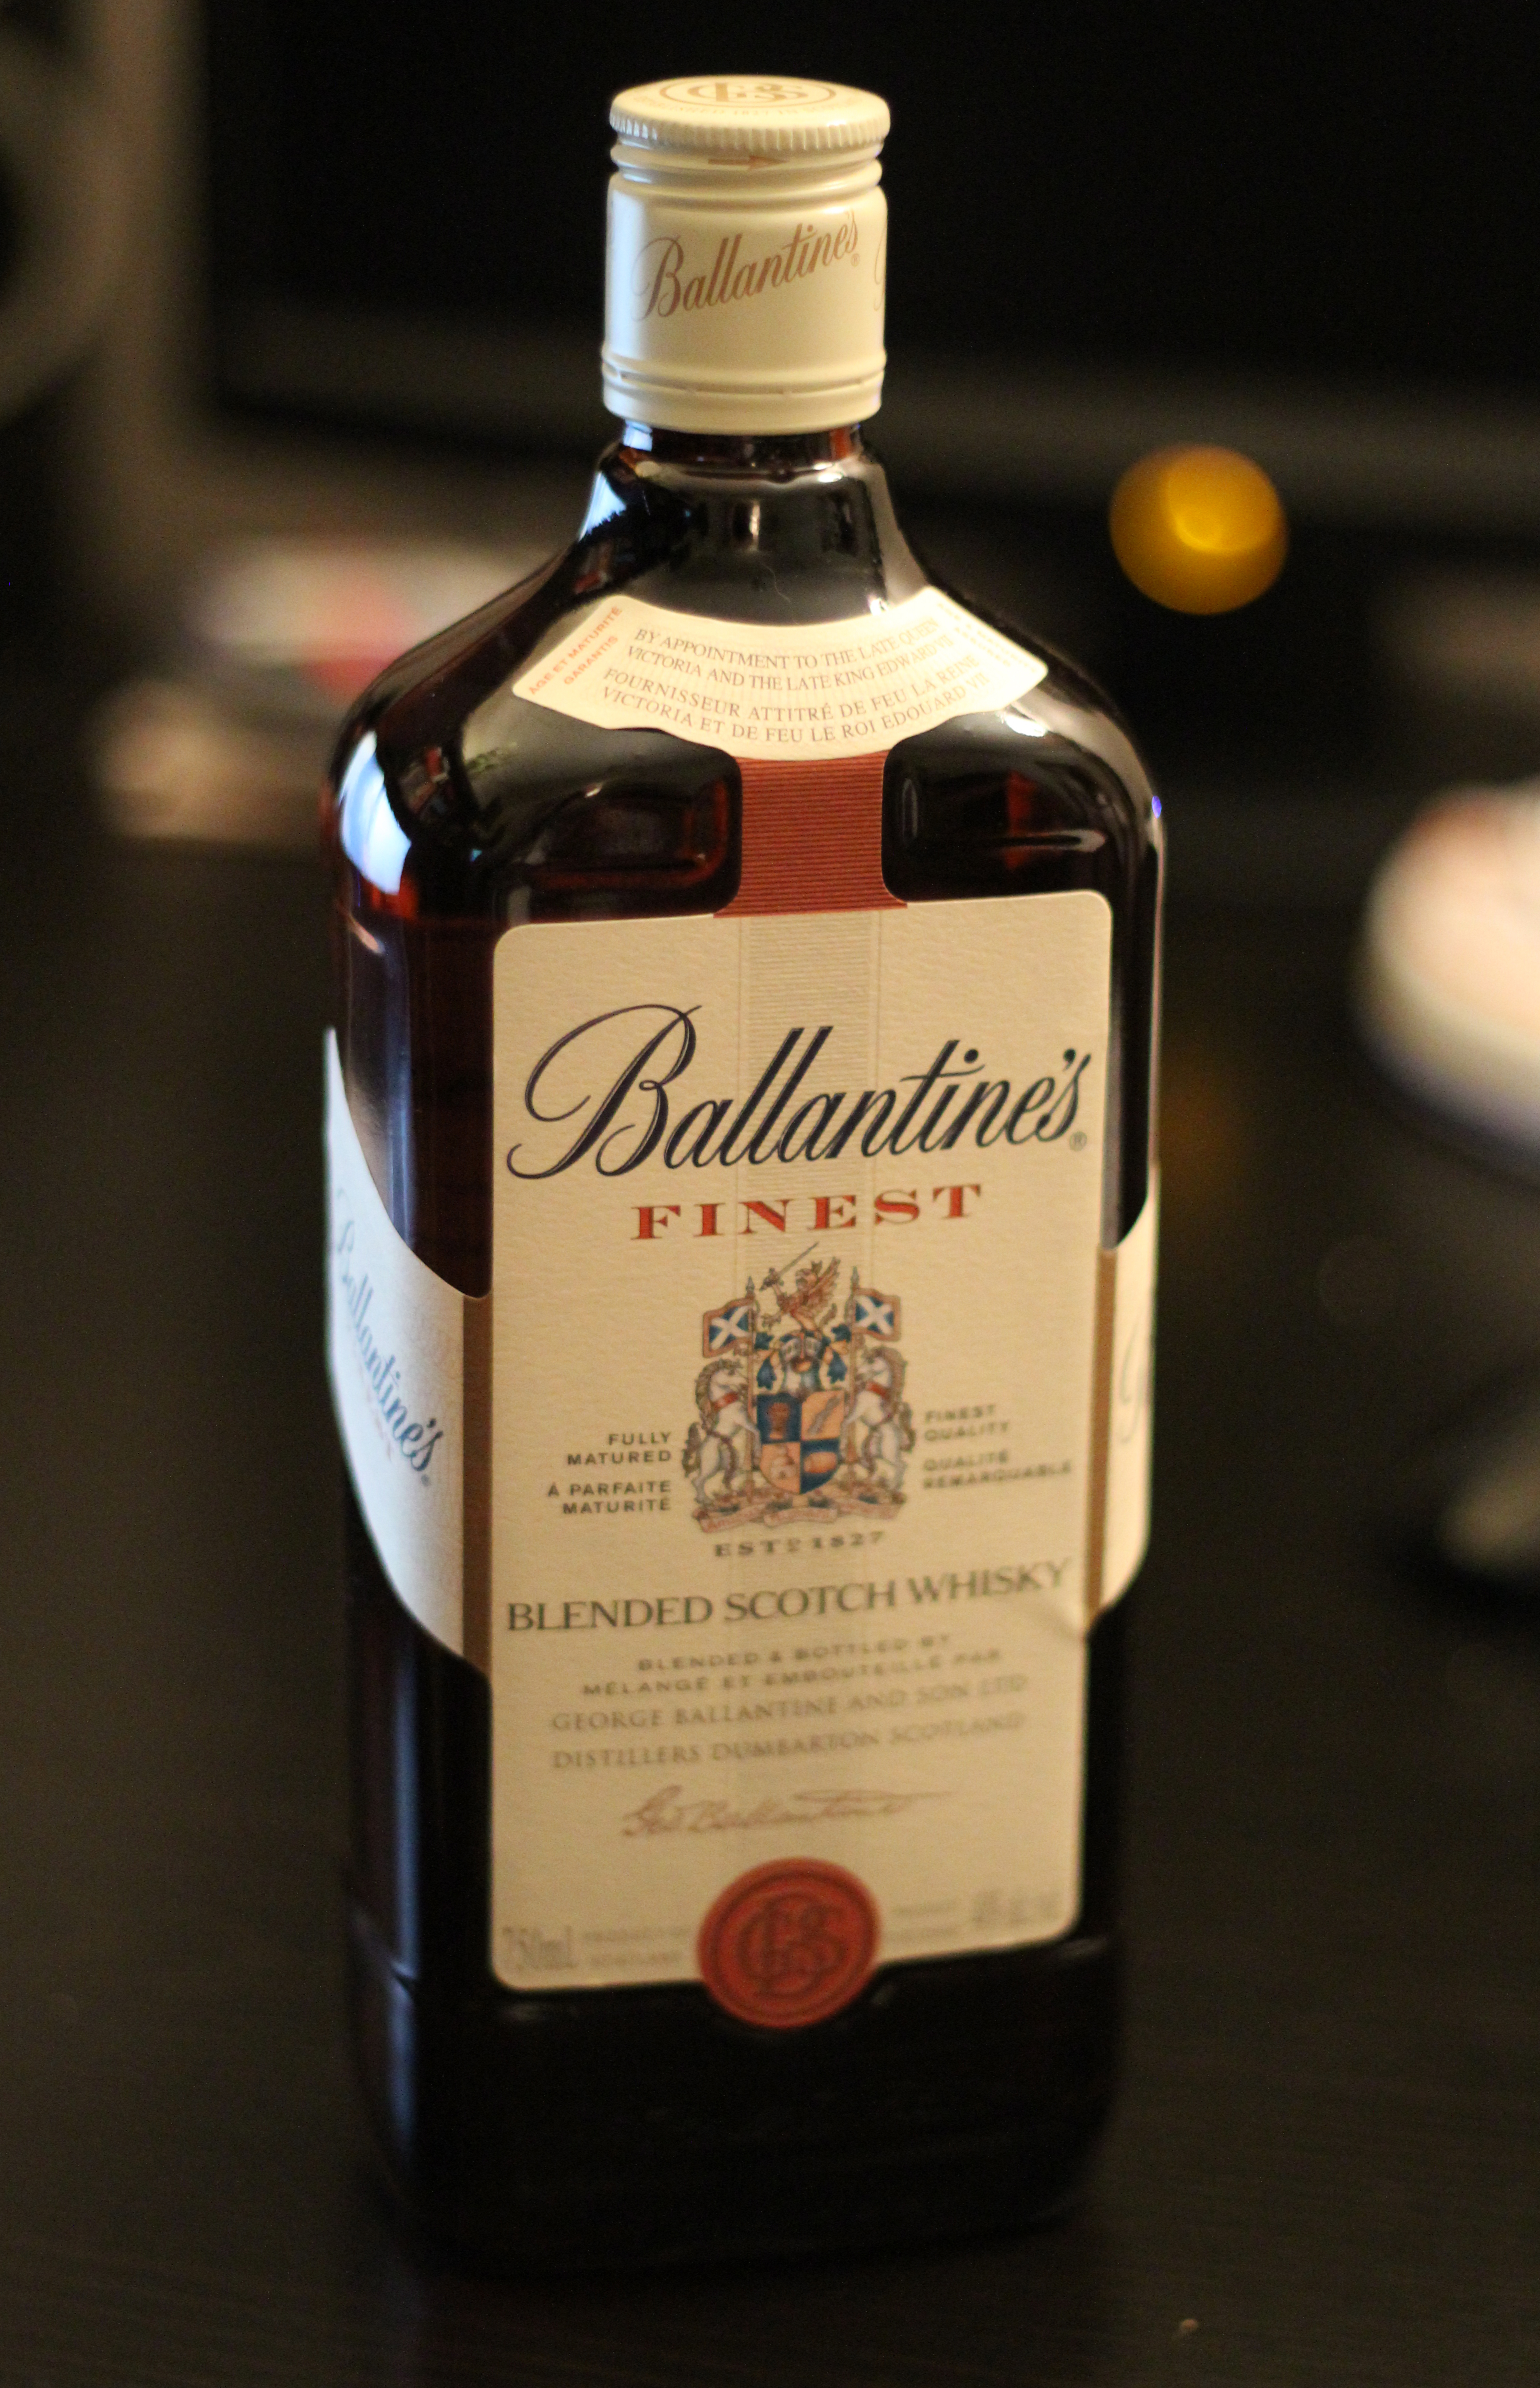 ScotchParty Review #6 – Ballantine's Finest with Ashley, Dan, Bowick, Ryan, Jared & Goran